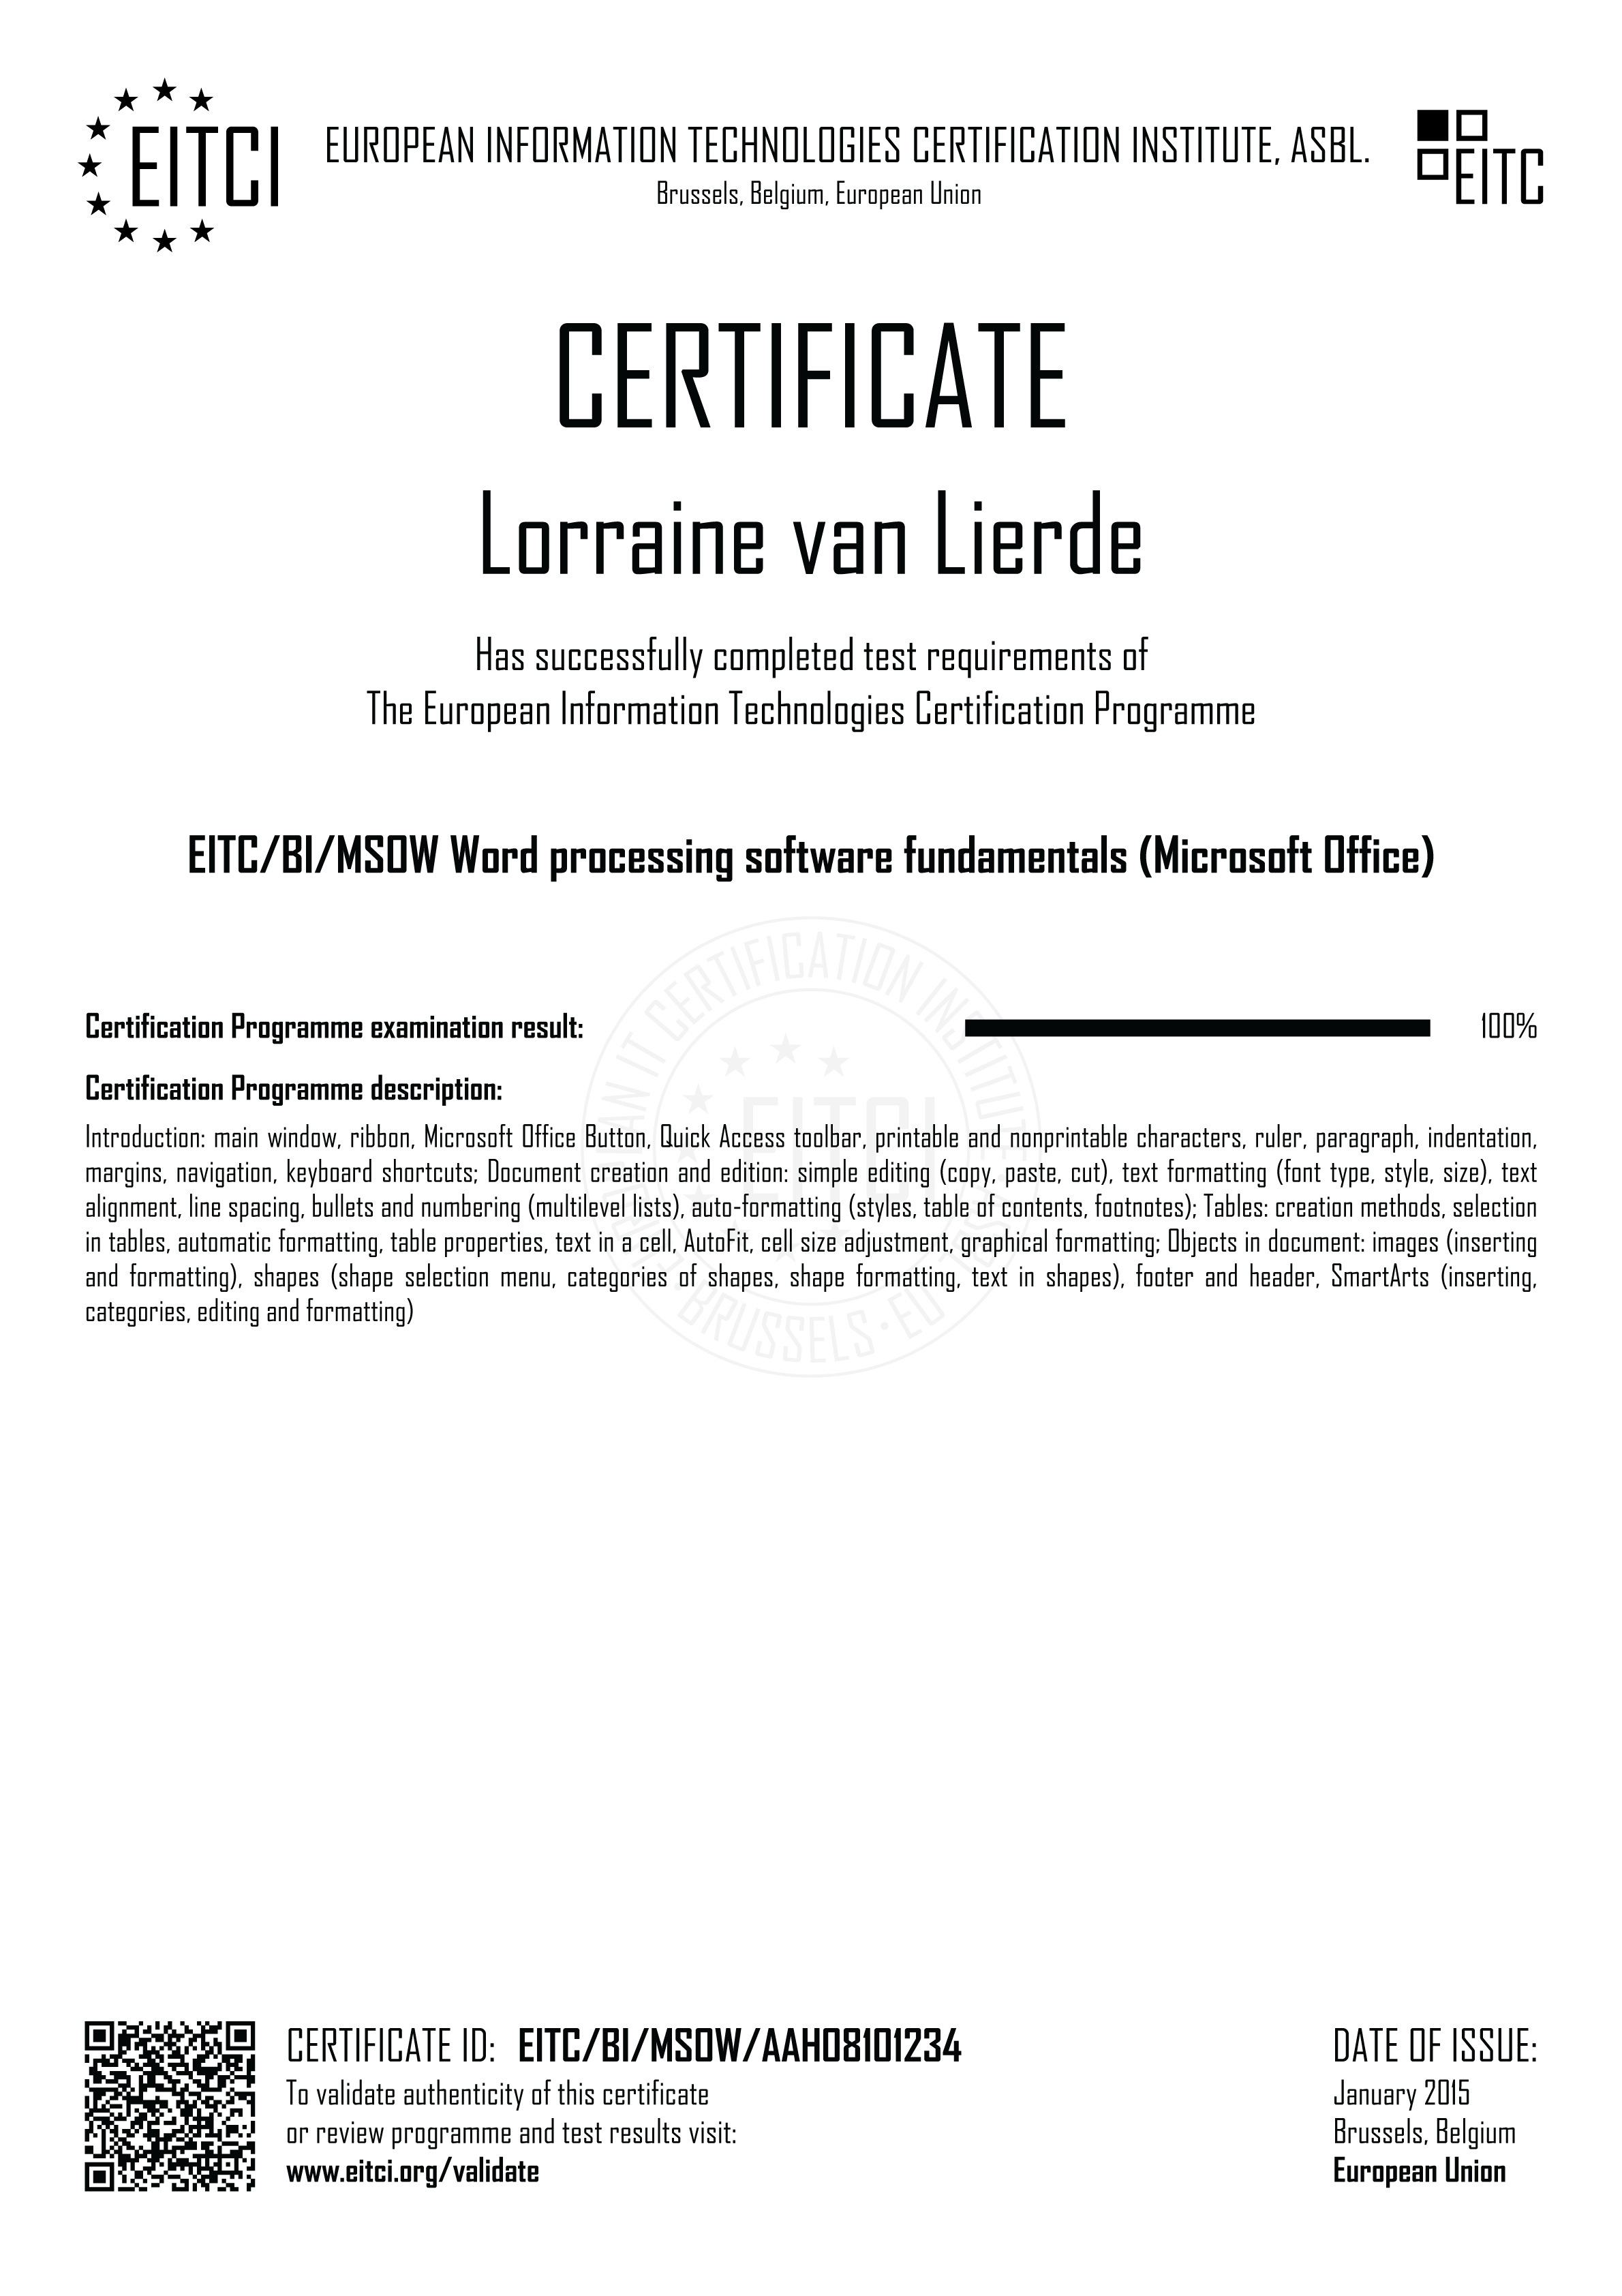 Eitcbimsow Word Processing Software Fundamentals Microsoft Office